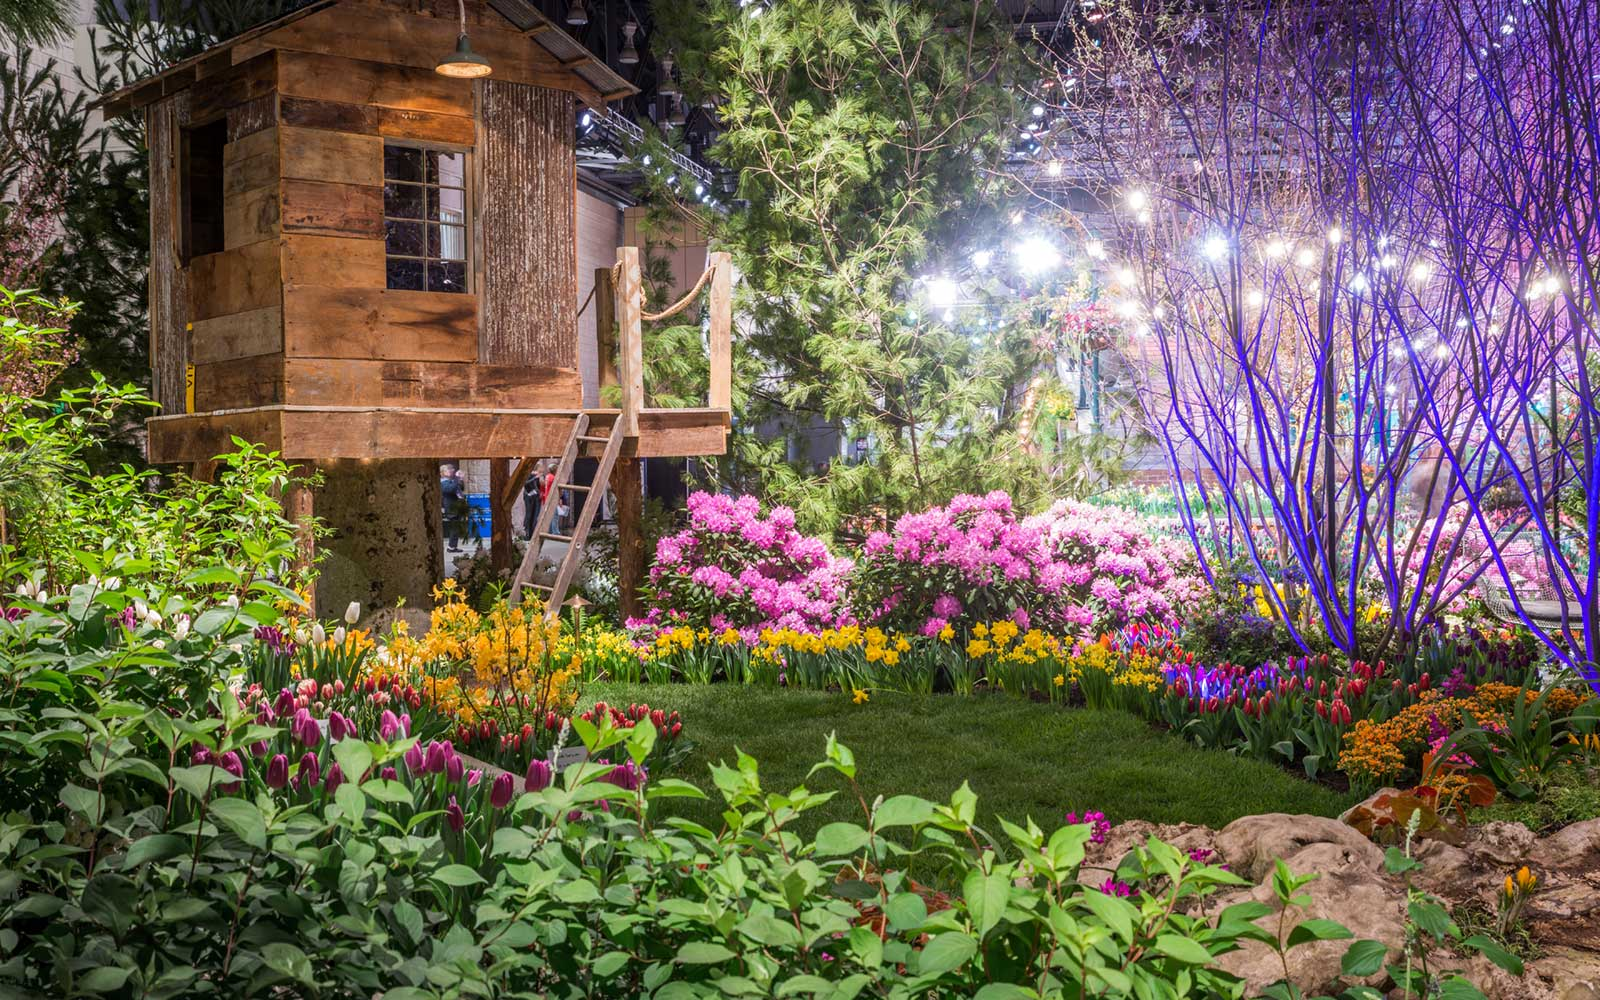 Inside the Philadelphia Flower Show